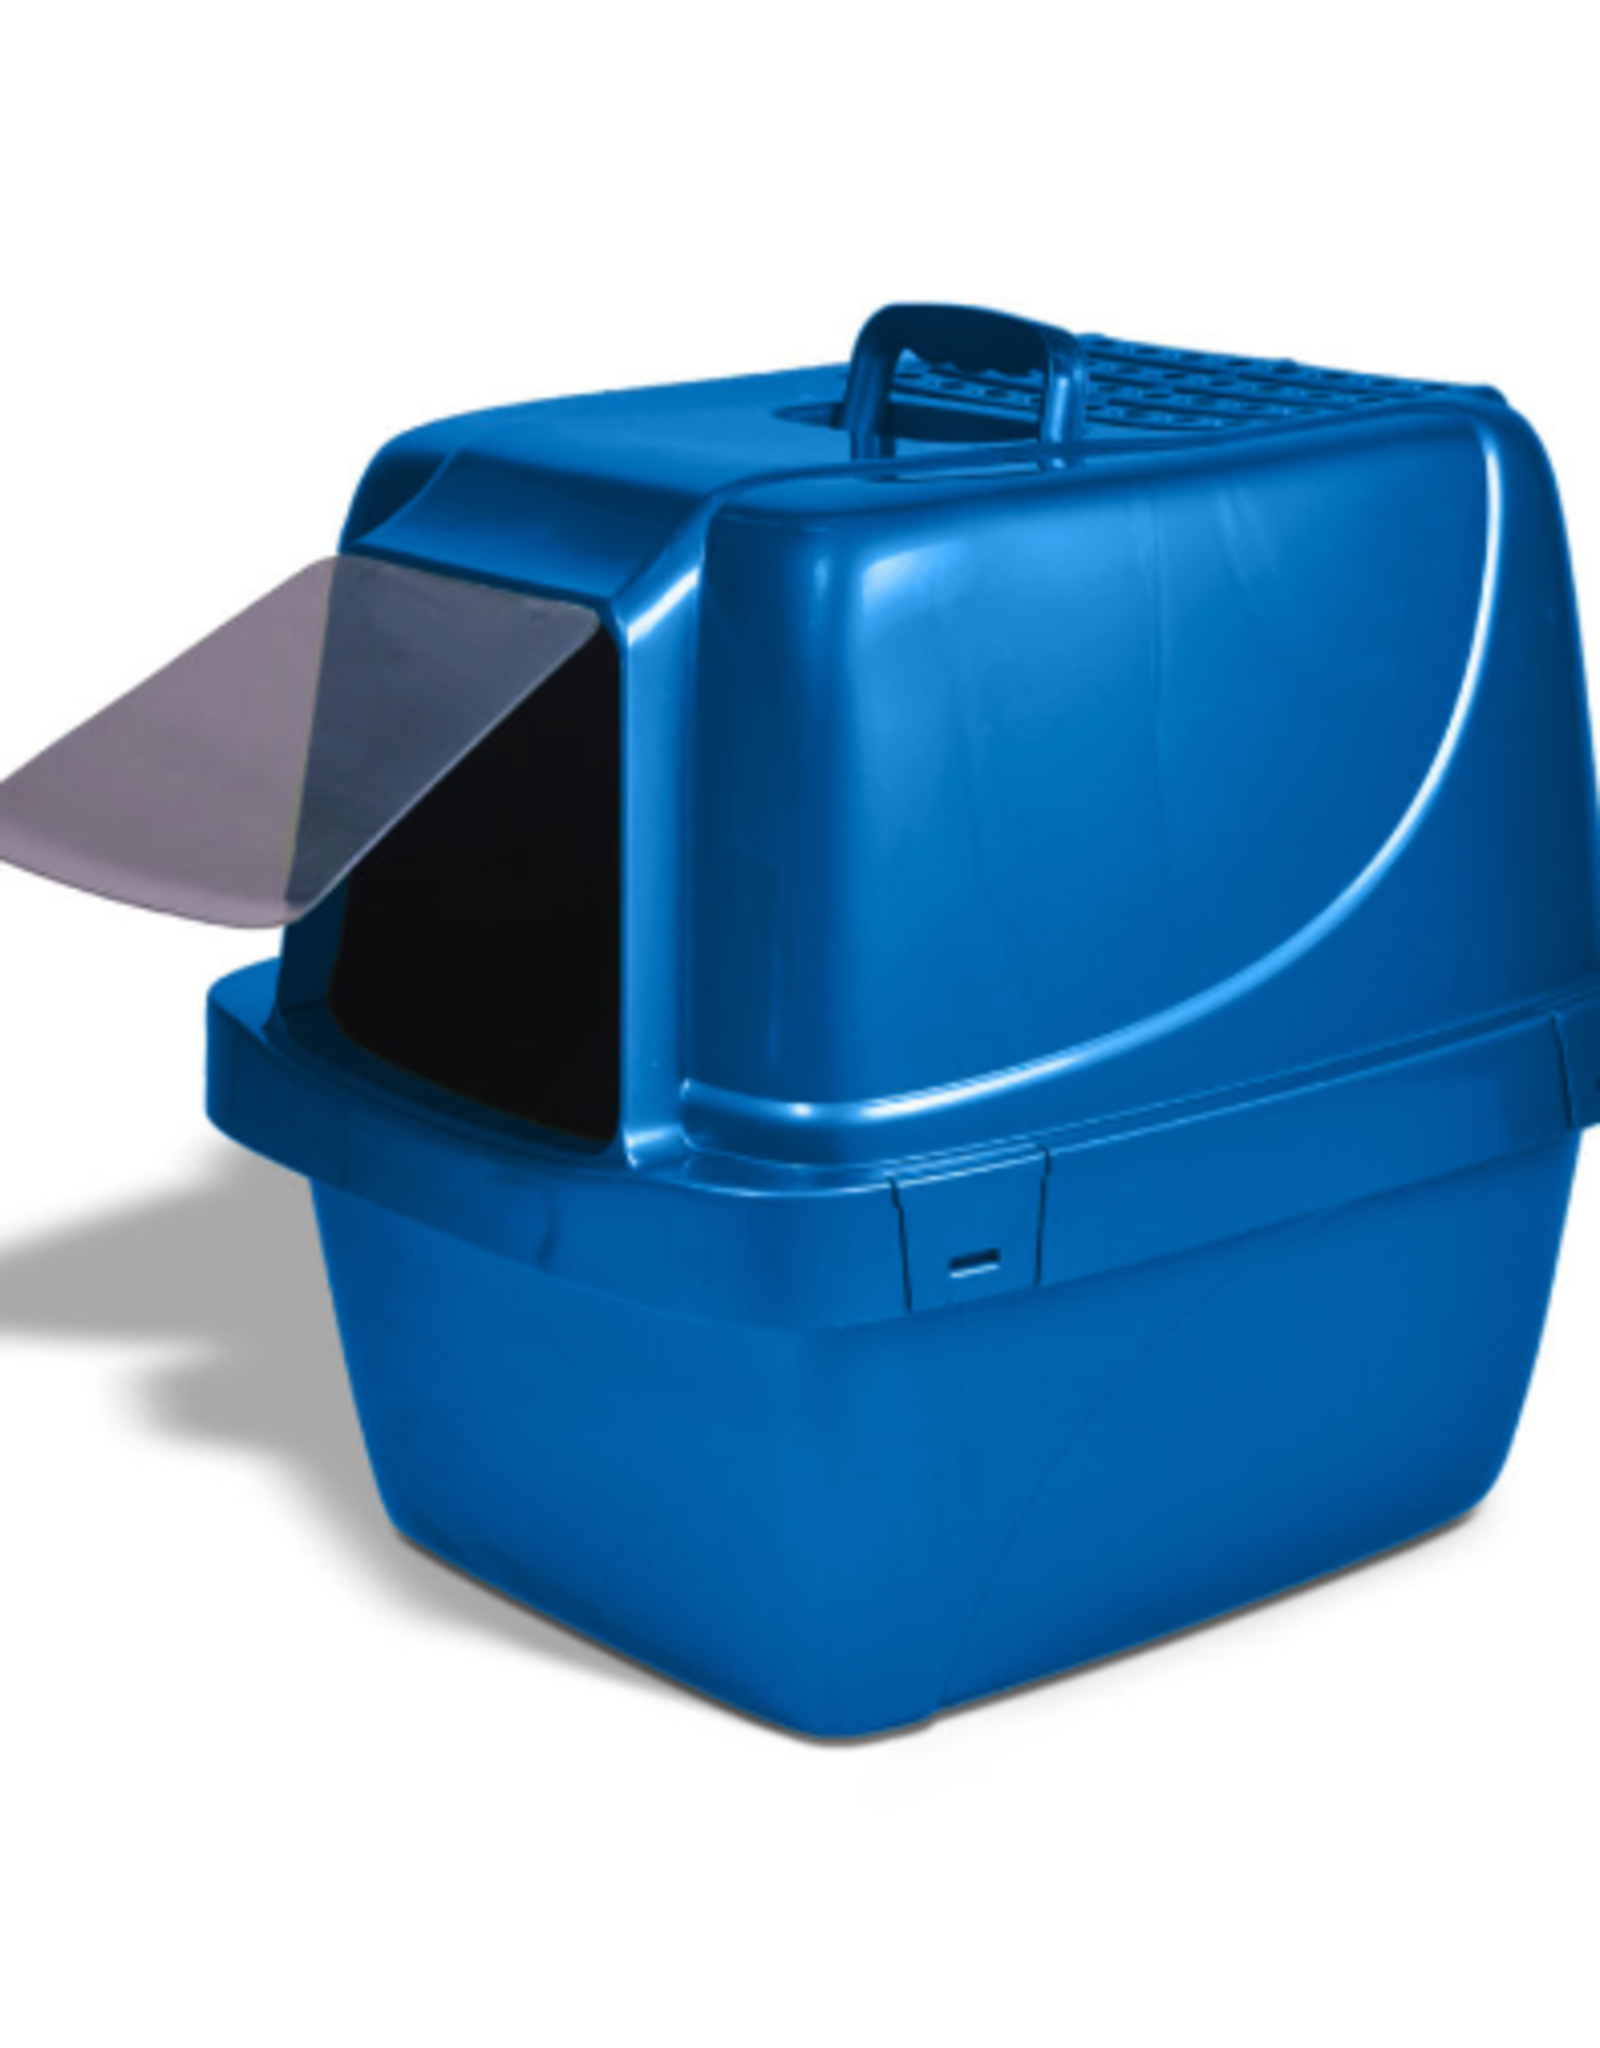 Van: Enclosed Litter Pan